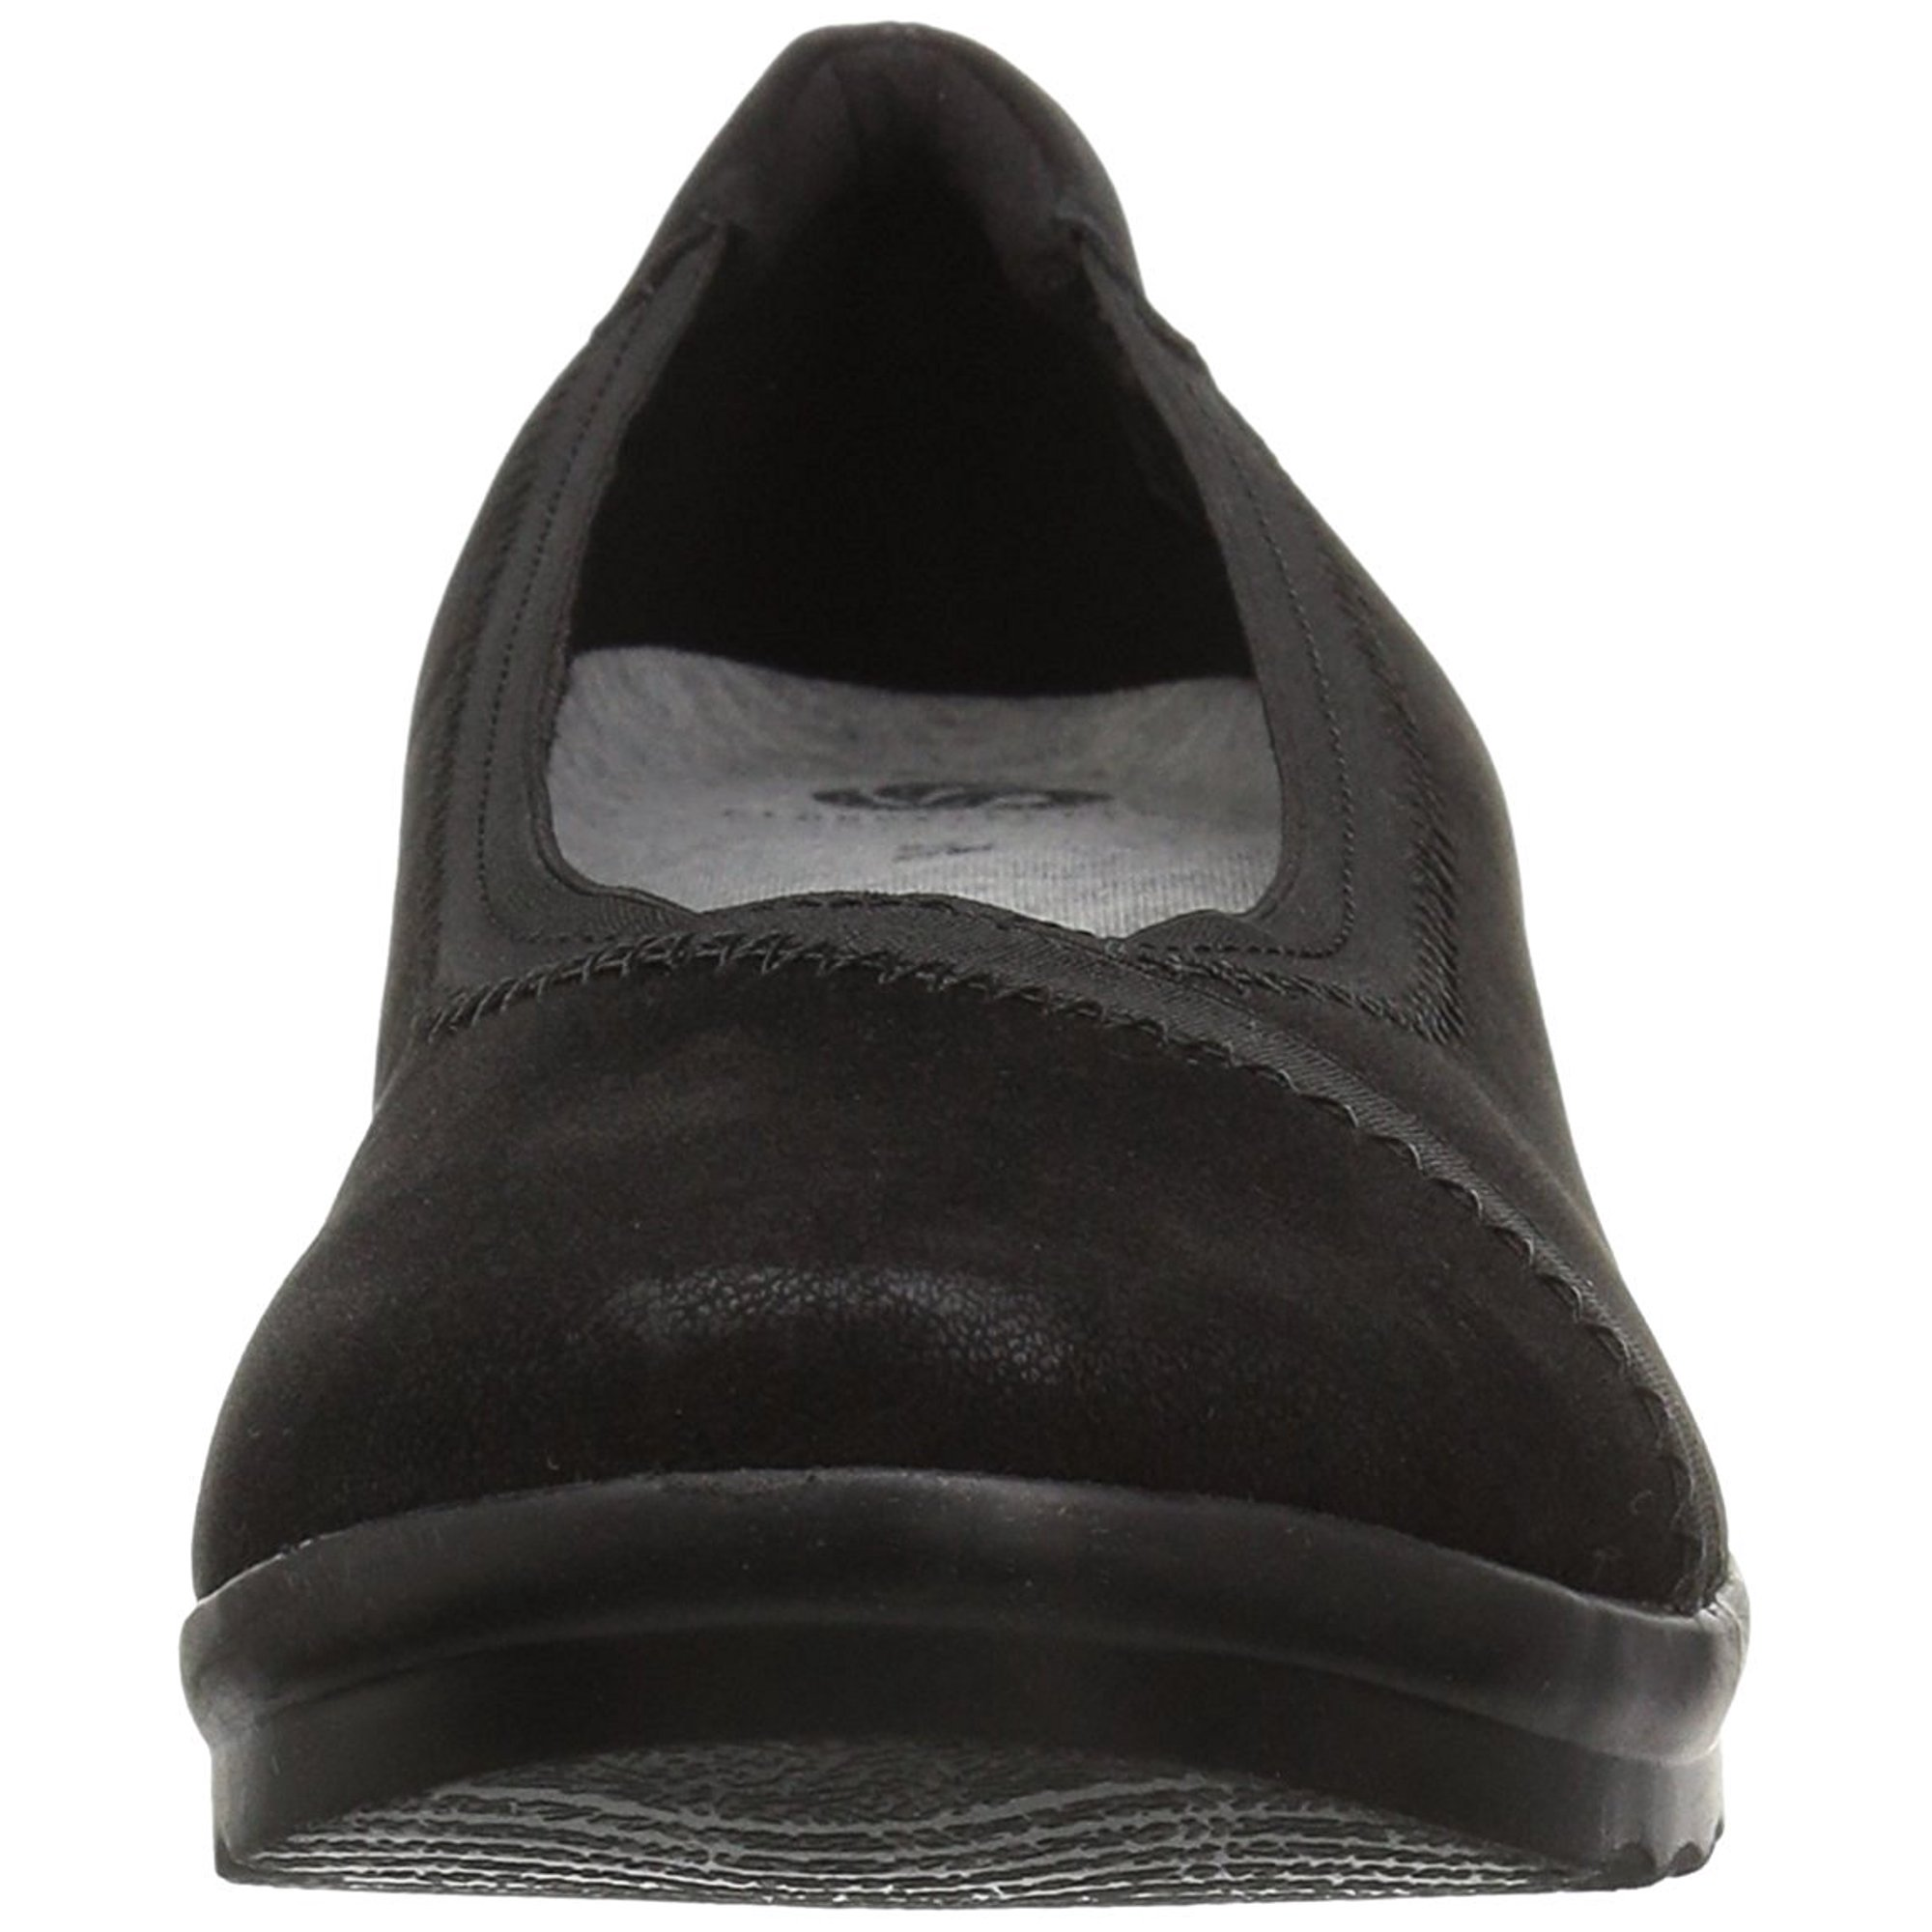 3124ca16a43 CLARKS Womens Caddell Dash Leather Closed Toe Wedge Pumps